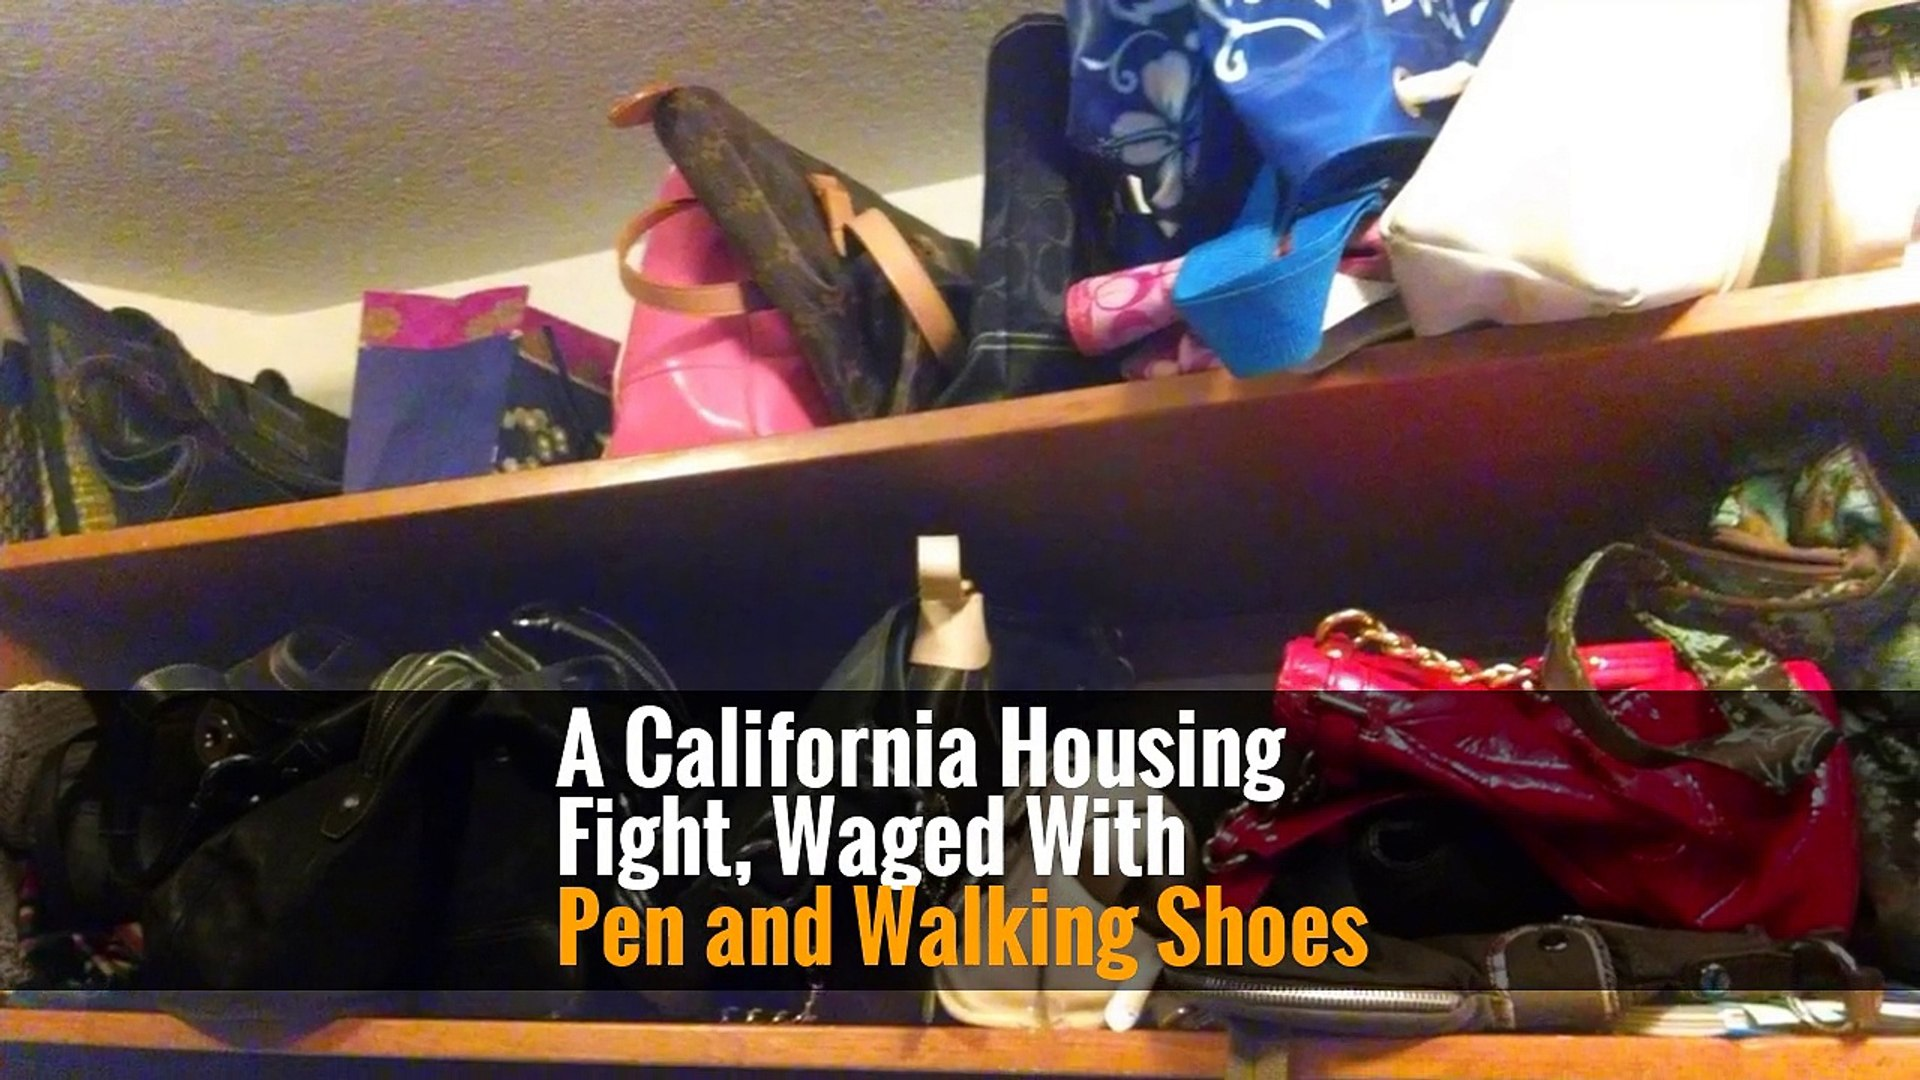 A California Housing Fight, Waged With Pen and Walking Shoes